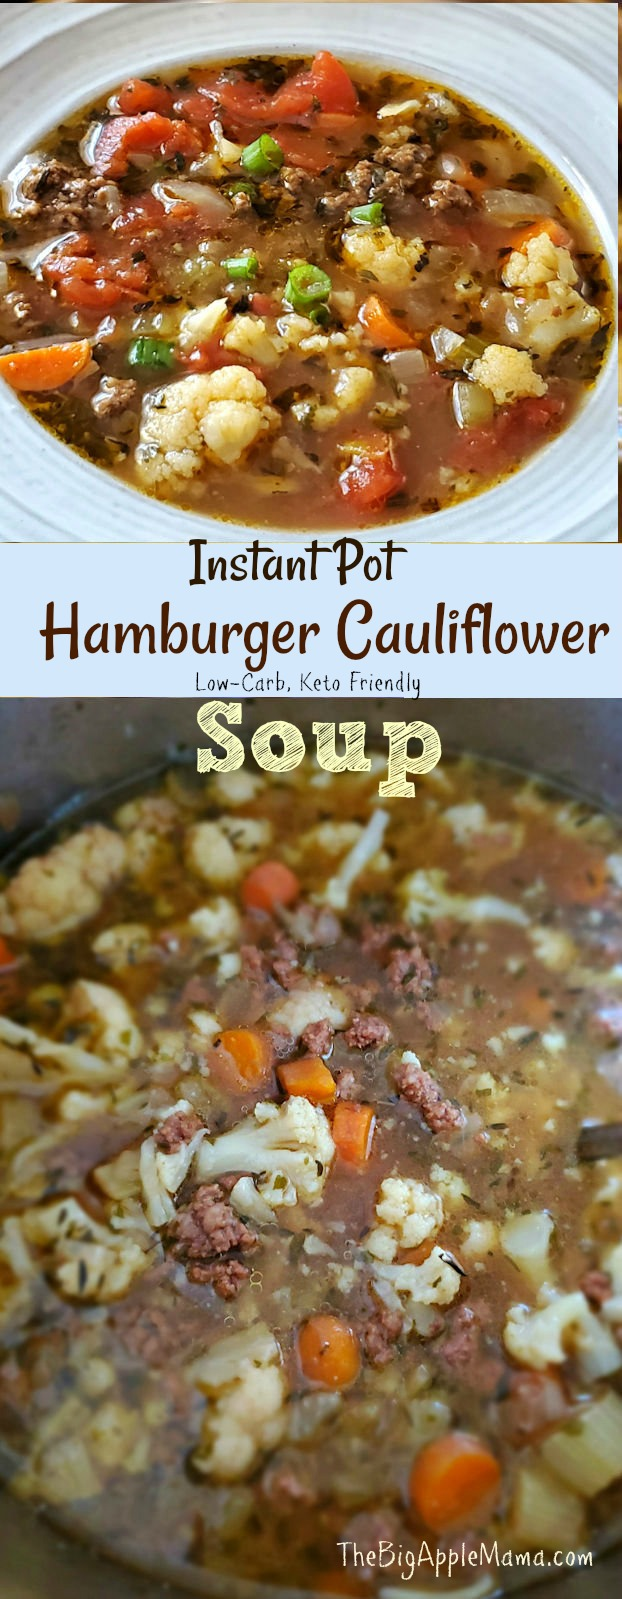 Instant Pot Hamburger Cauliflower soup recipe, Low carb, Keto friendly